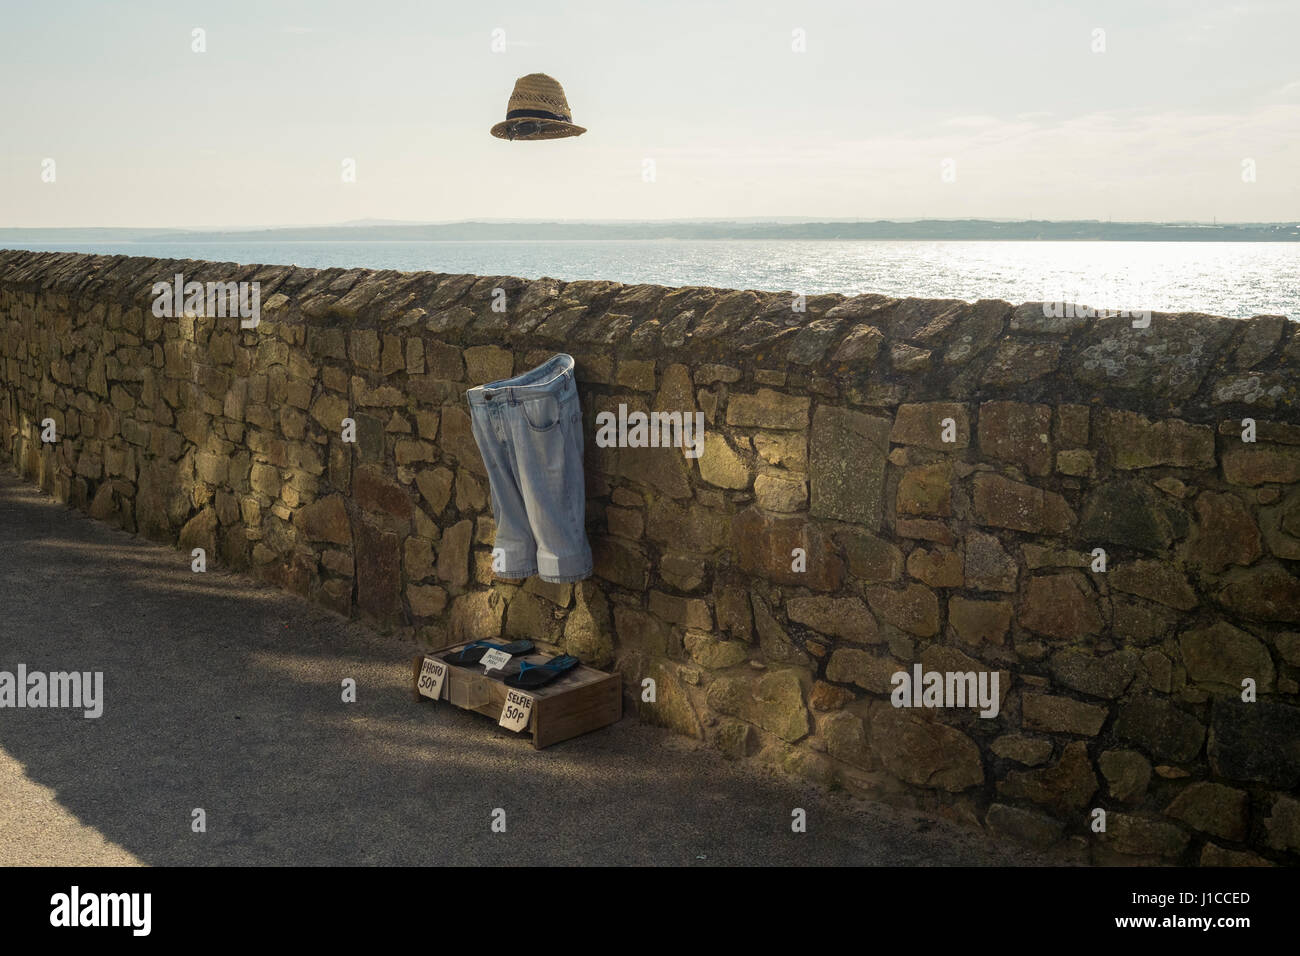 An invisible man installation at St Ives, Cornwall where tourists and locals can take a selife with the invisible Stock Photo